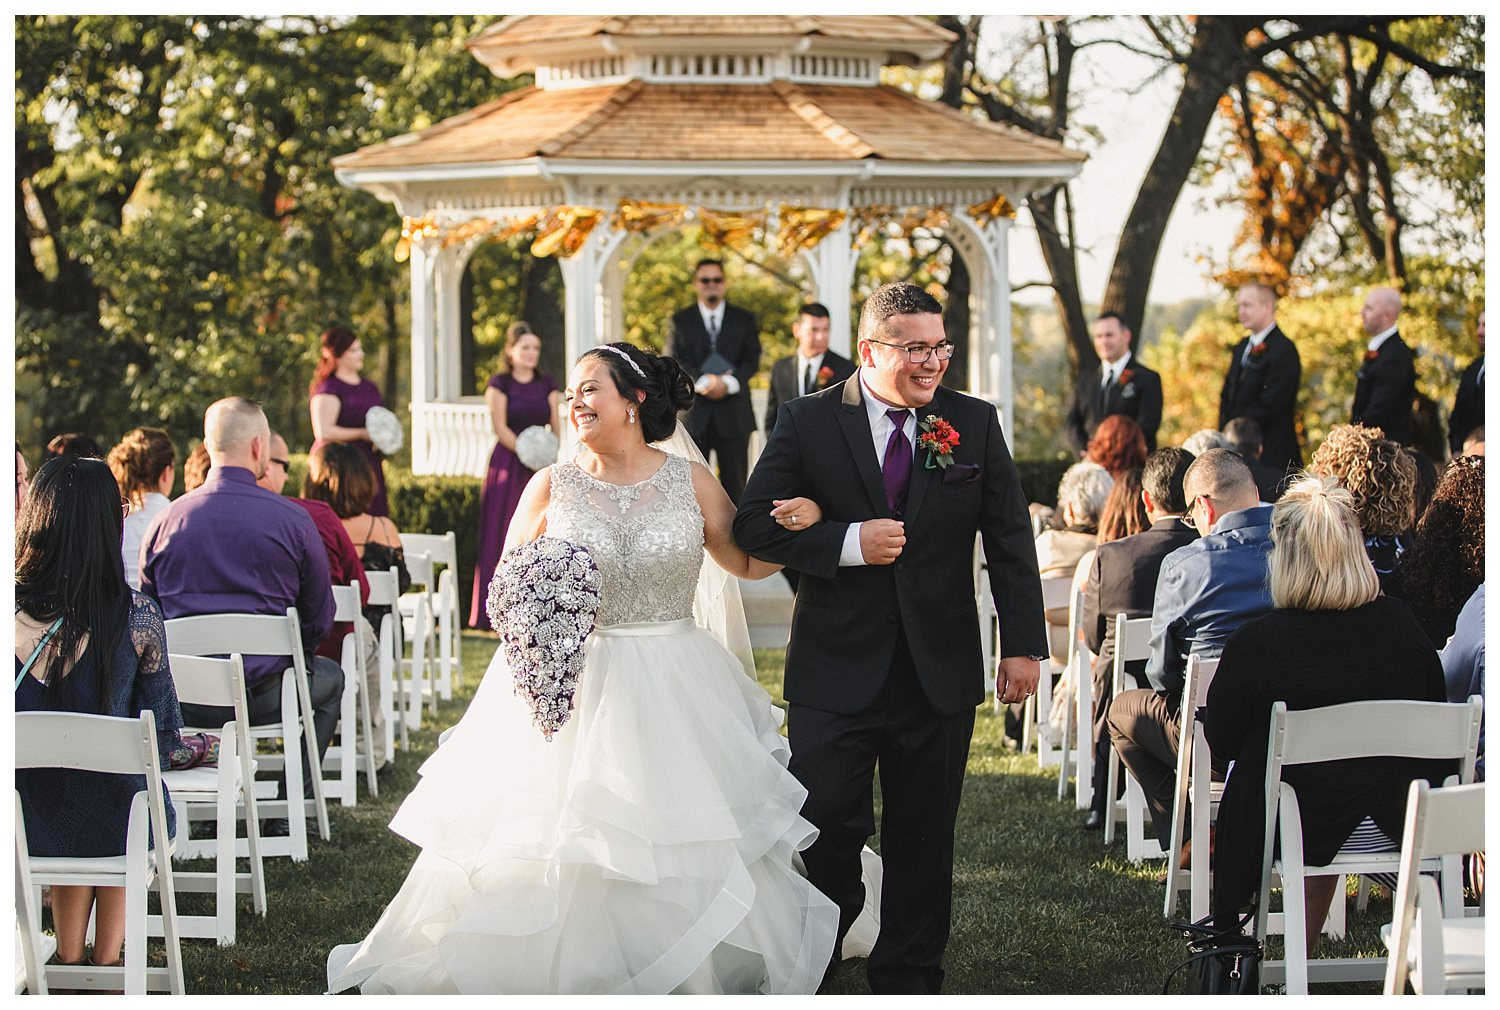 Kelsey_Diane_Photography_Hawthorne_House_Parkville_Kansas_City_Wedding_Veronica_Pat_0047.jpg